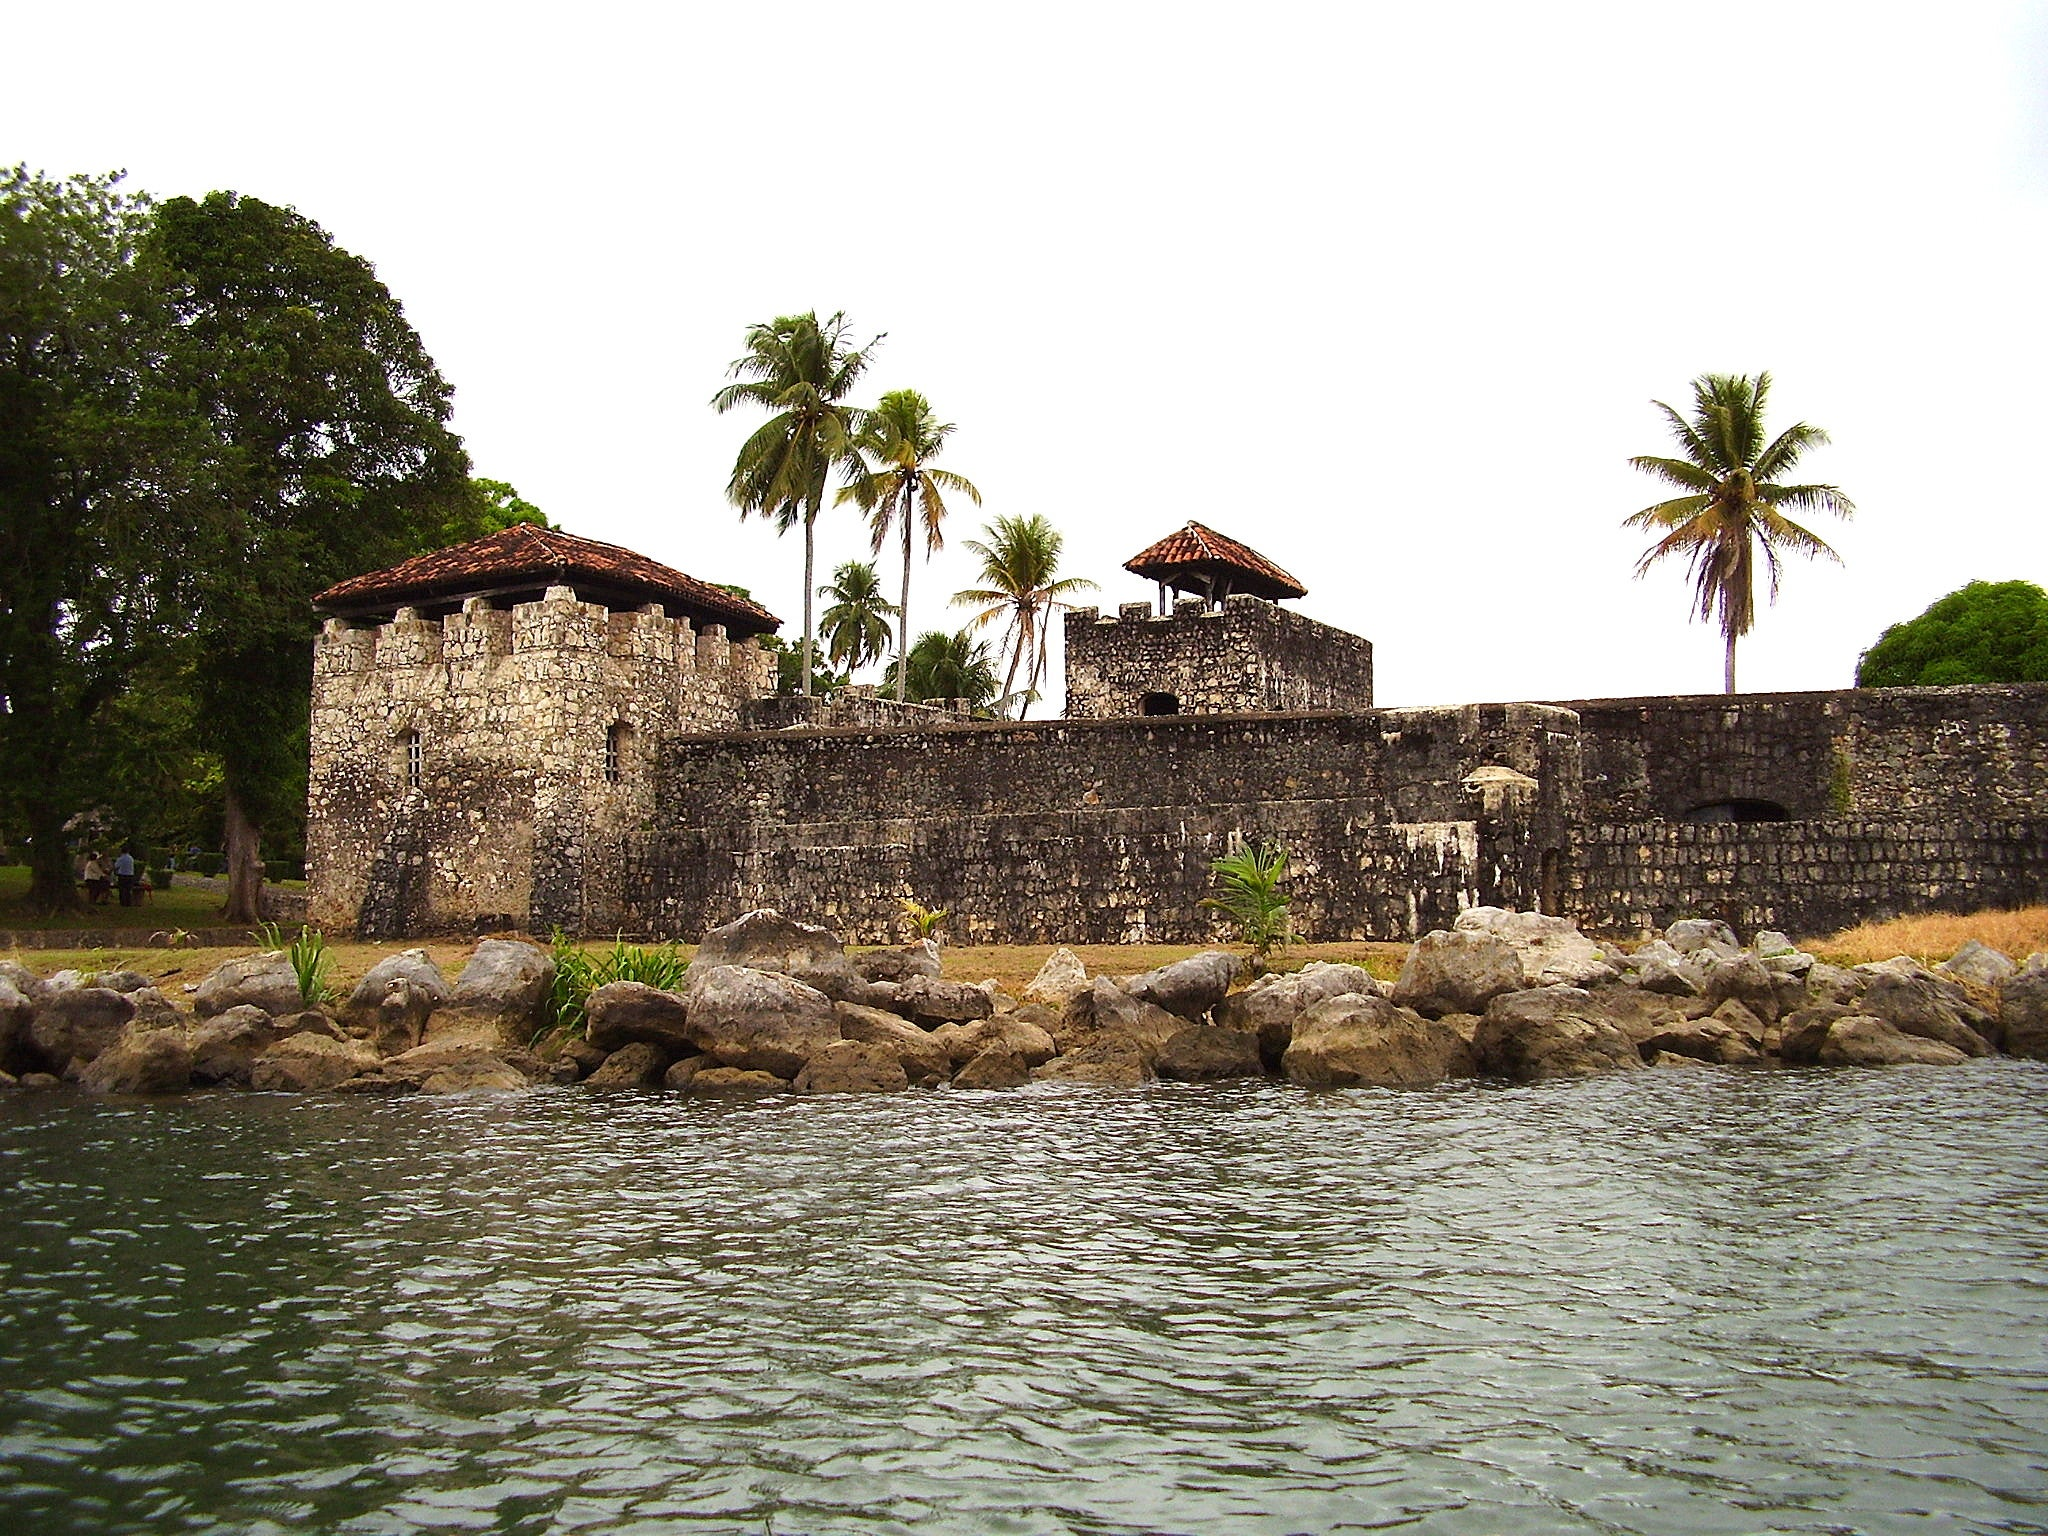 Pared en Castillo San Felipe